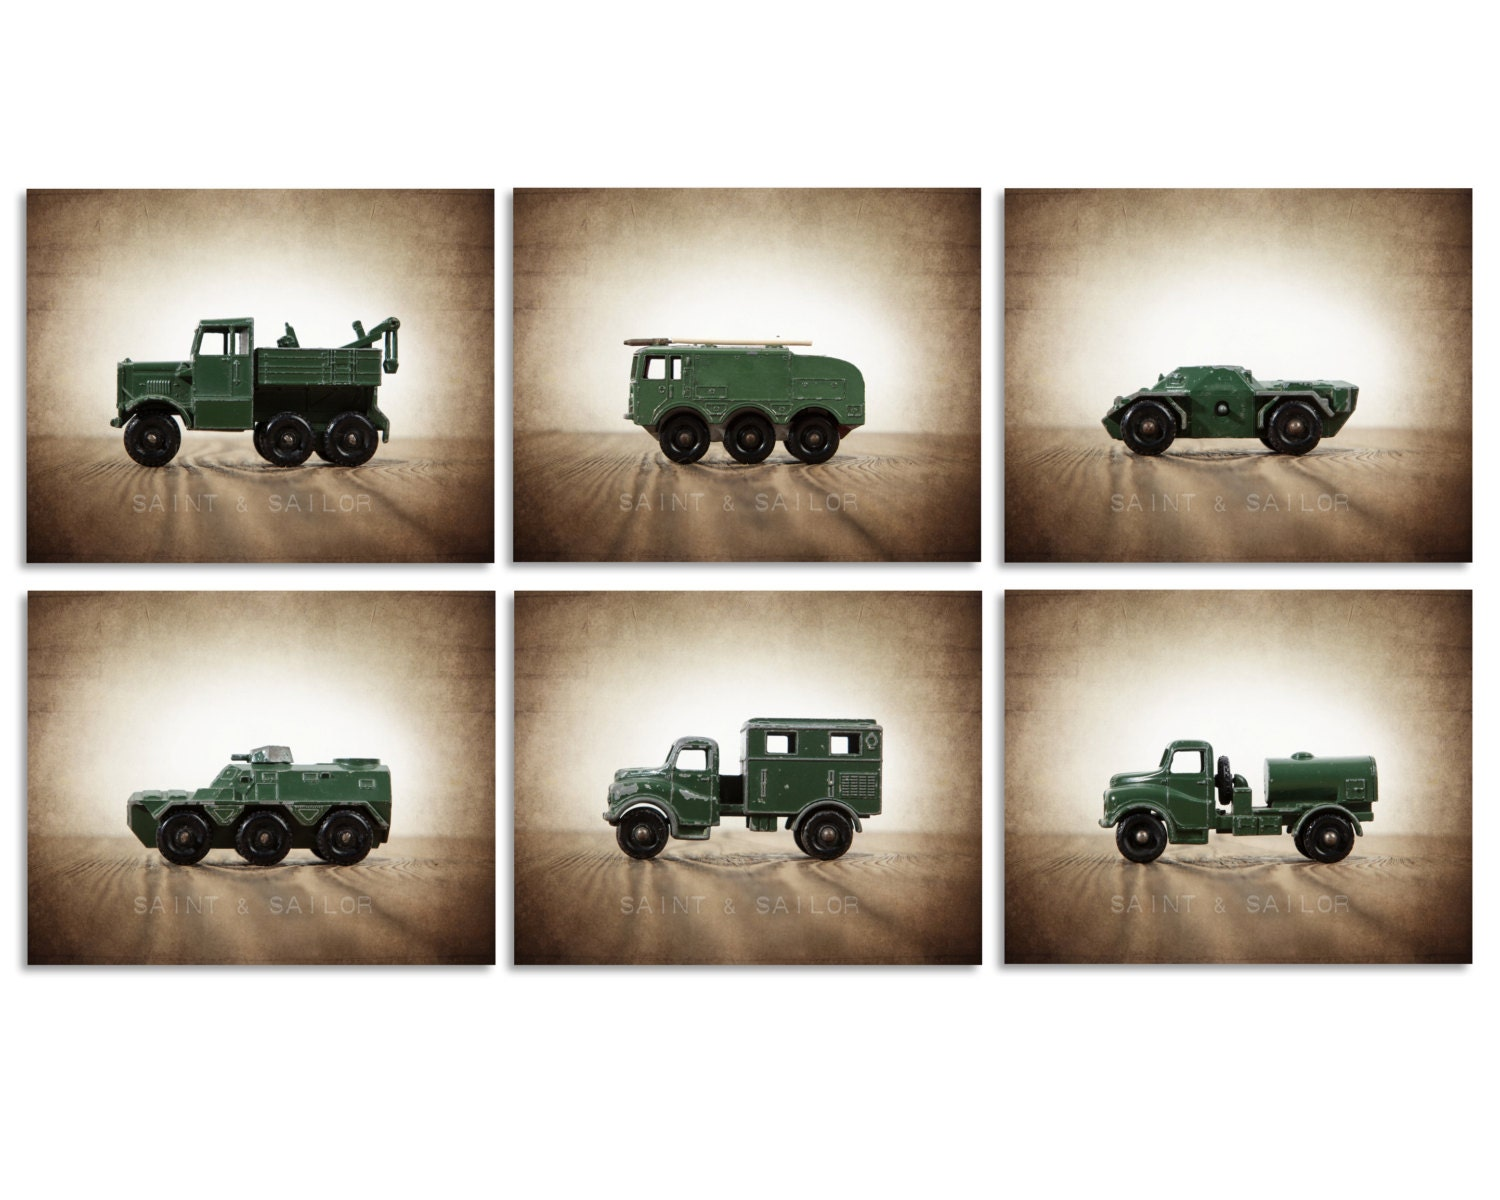 Usaf Wall Decor : Military wall art vintage vehicles set of photo